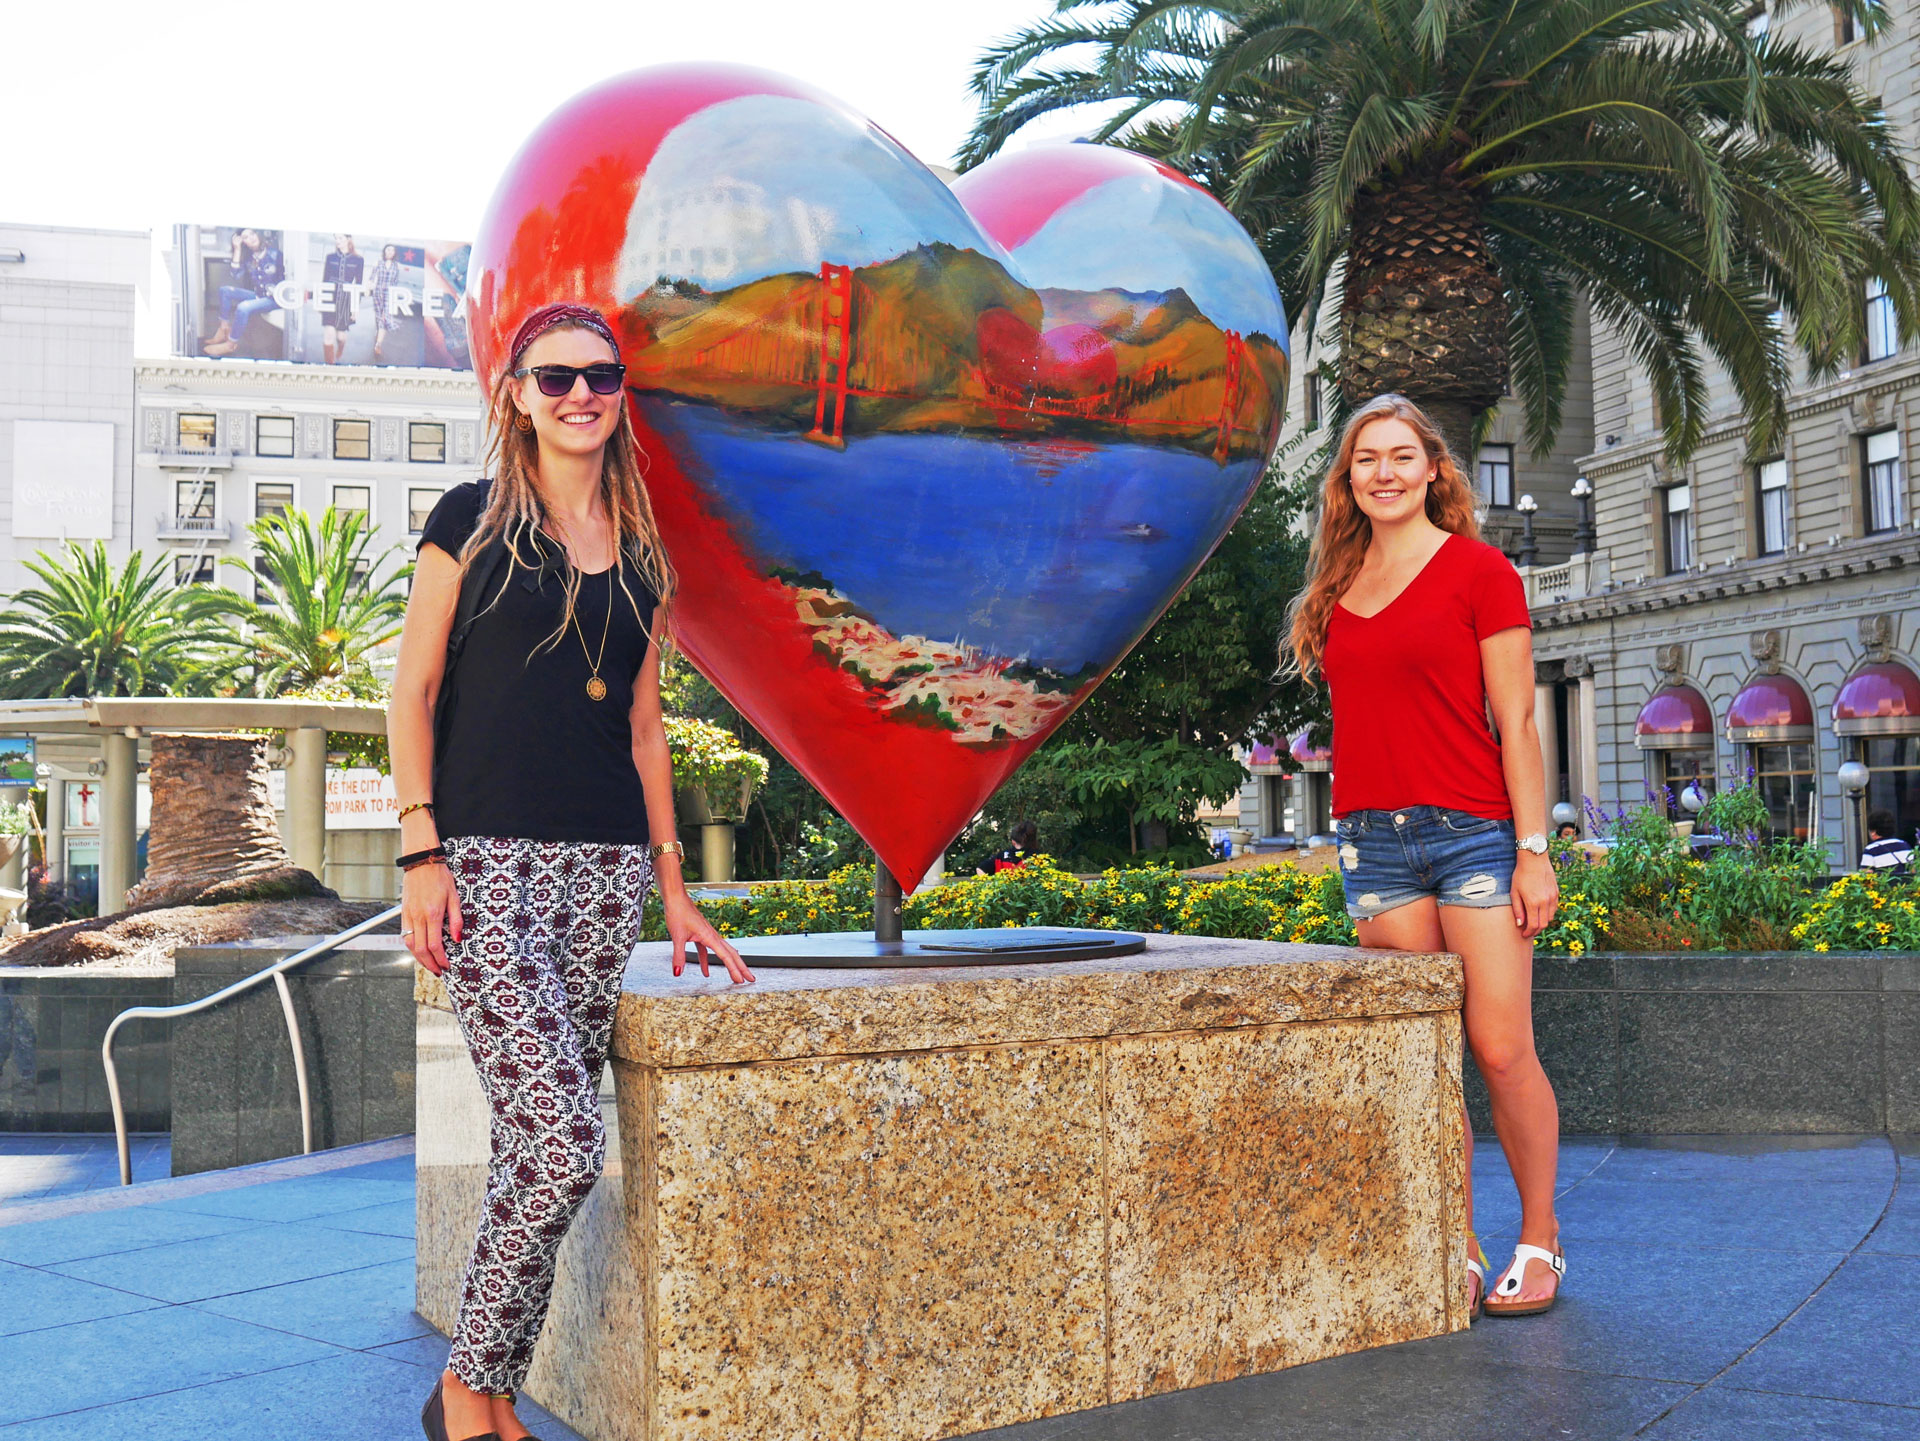 Sisters next to Bennett's heart sculpture at Union Square in San Fran, CA